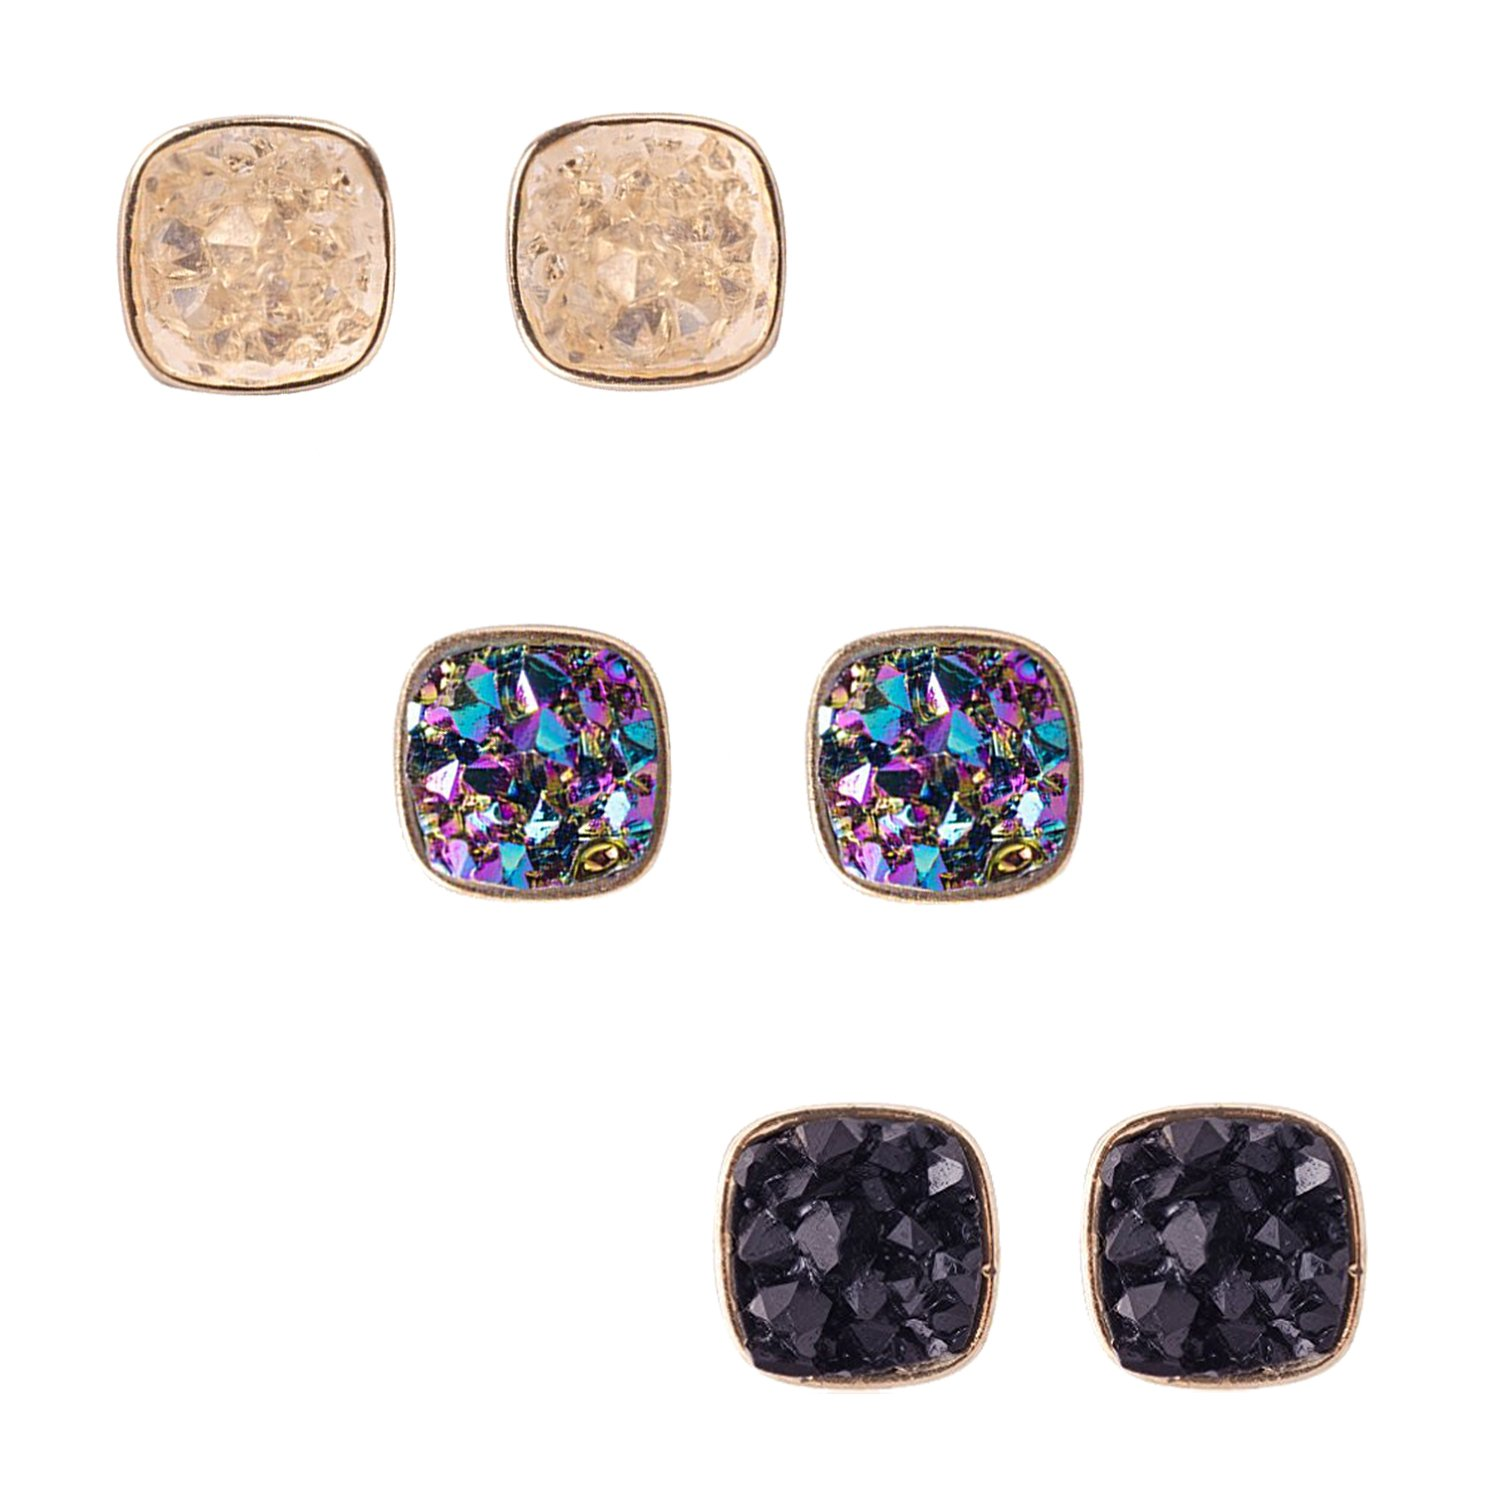 Jane Stone Fashion Resin Square Colorful Faux Druzy Stone Stud Earrings for Women and Teens